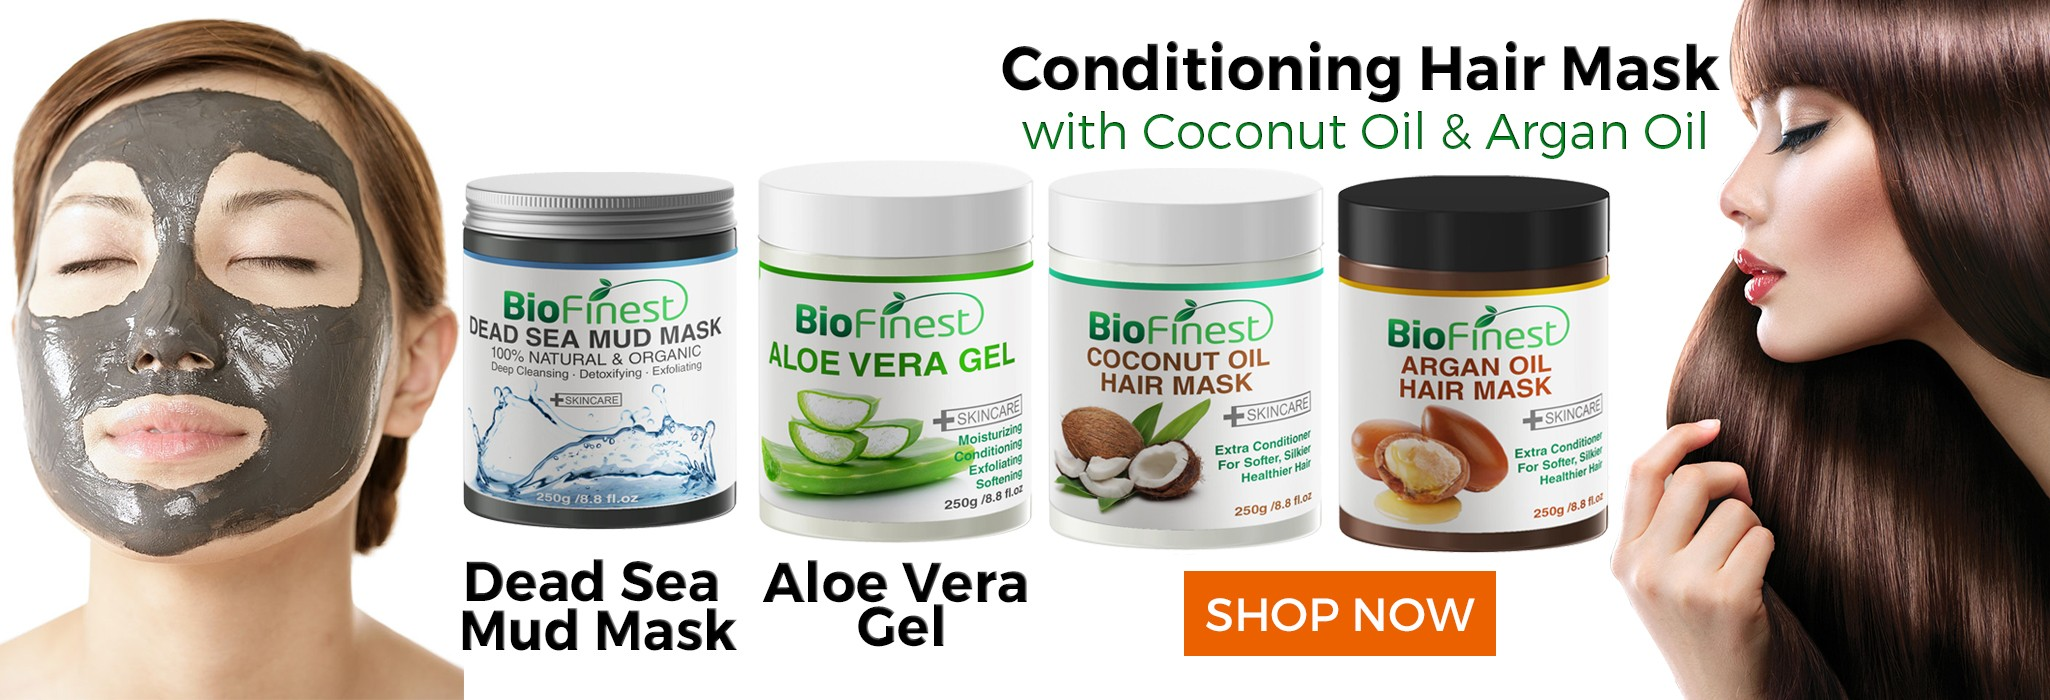 Biofinest Conditioning Hair Mask with Coconut OIl and Argan Oil, Dead Sea Mud Mask, Aloe Vera Gel